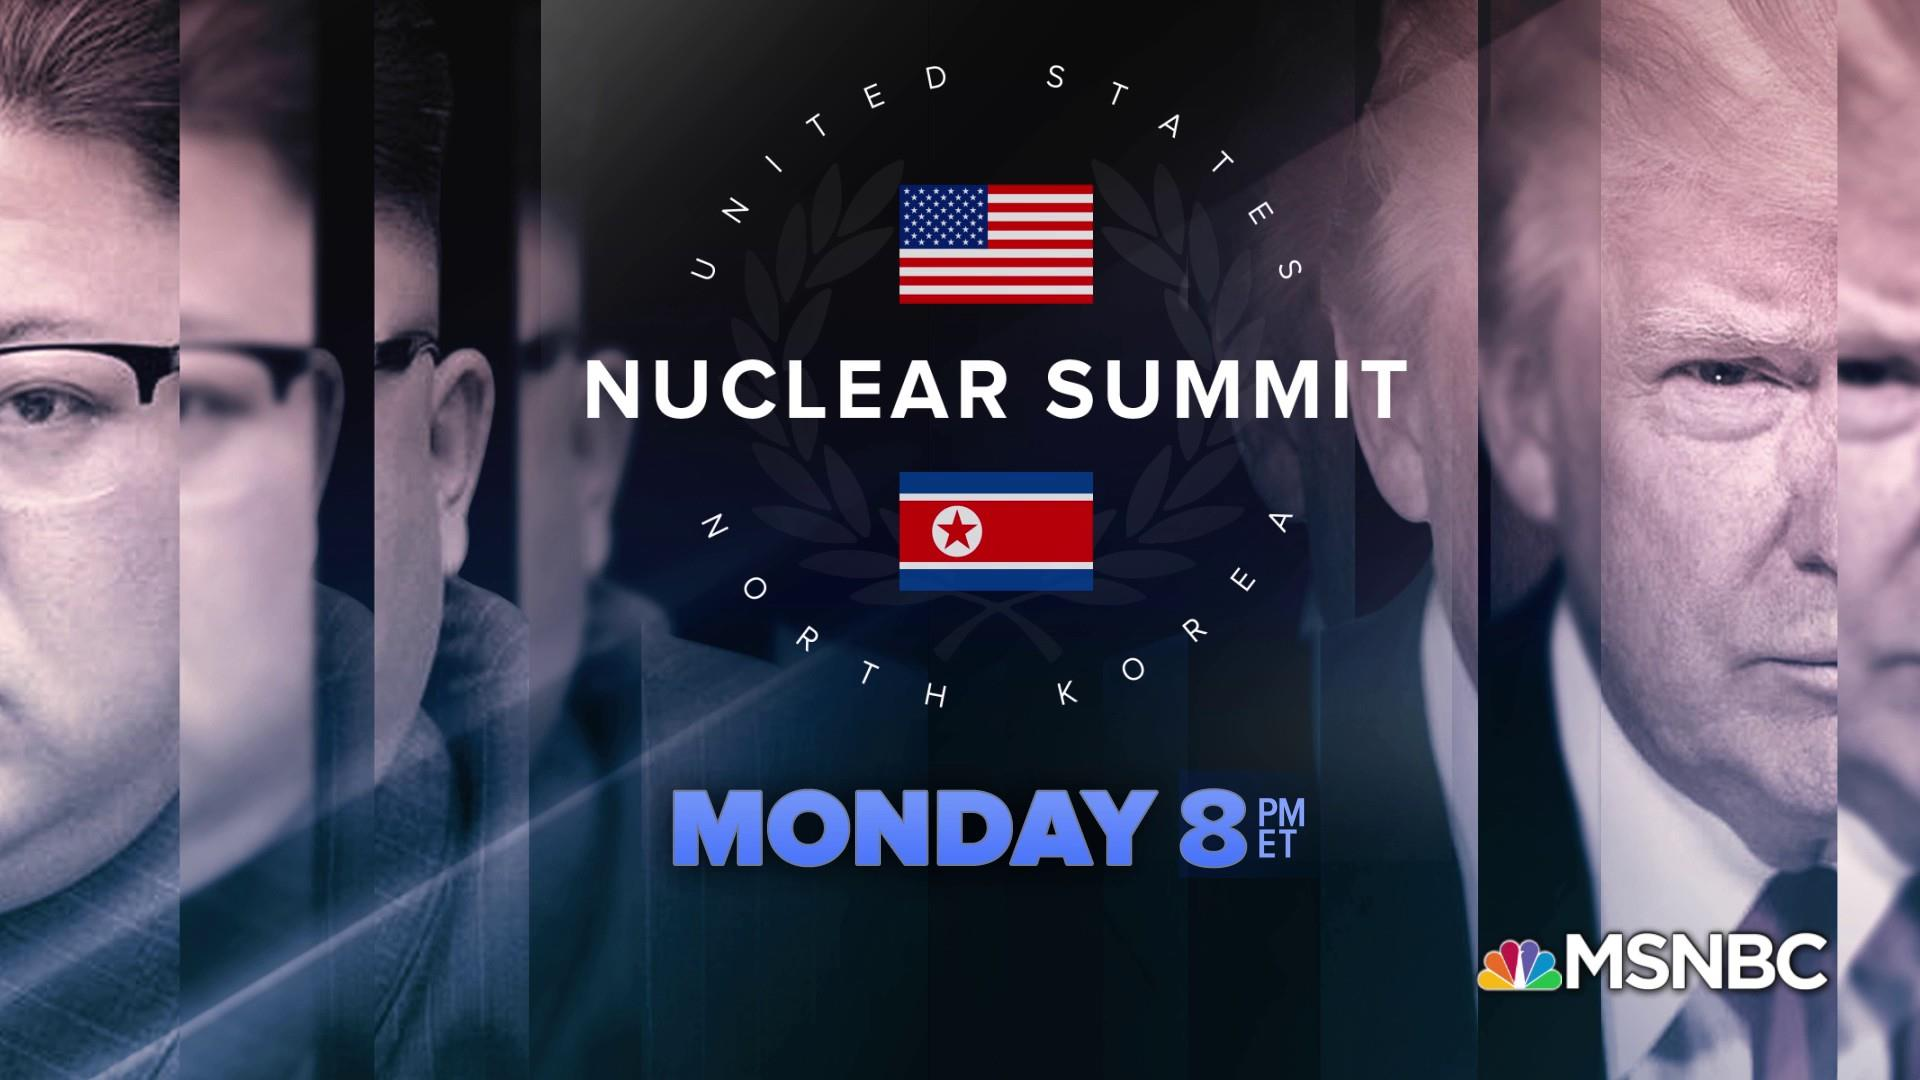 North Korea nuclear summit special coverage starts 8pm ET Monday